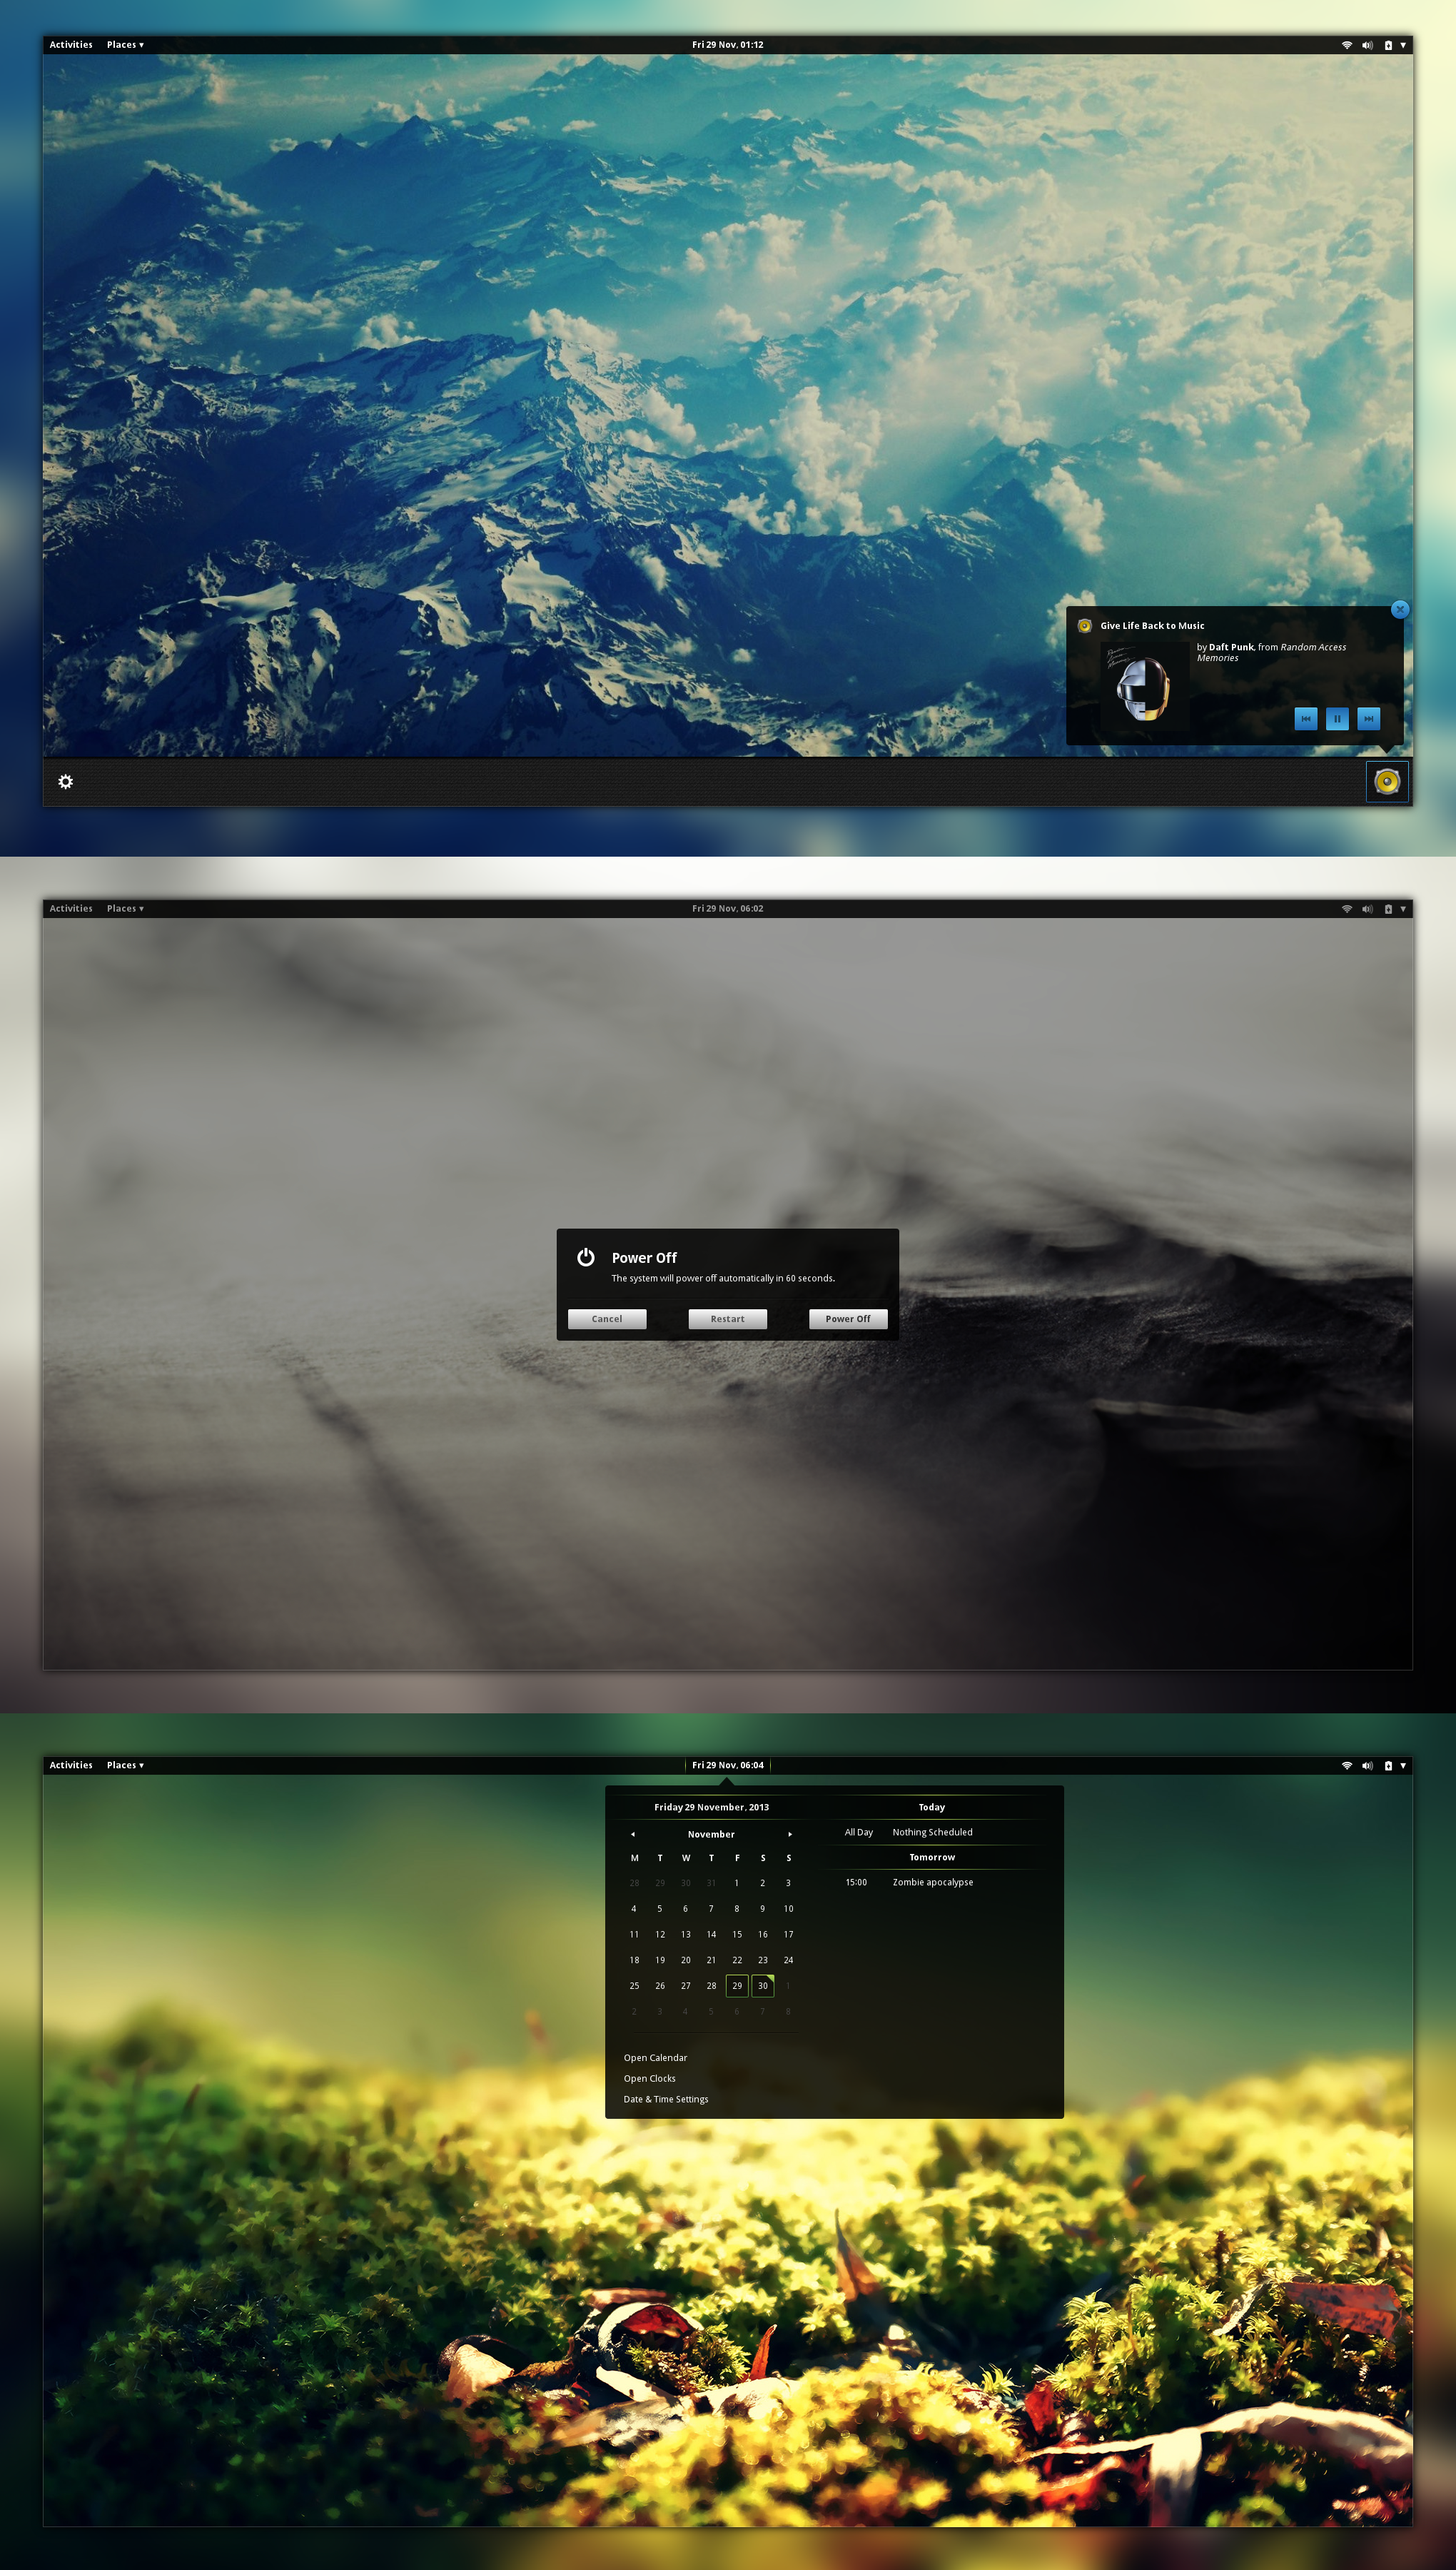 Tyr (gnome-shell 3.10 theme) by bimsebasse